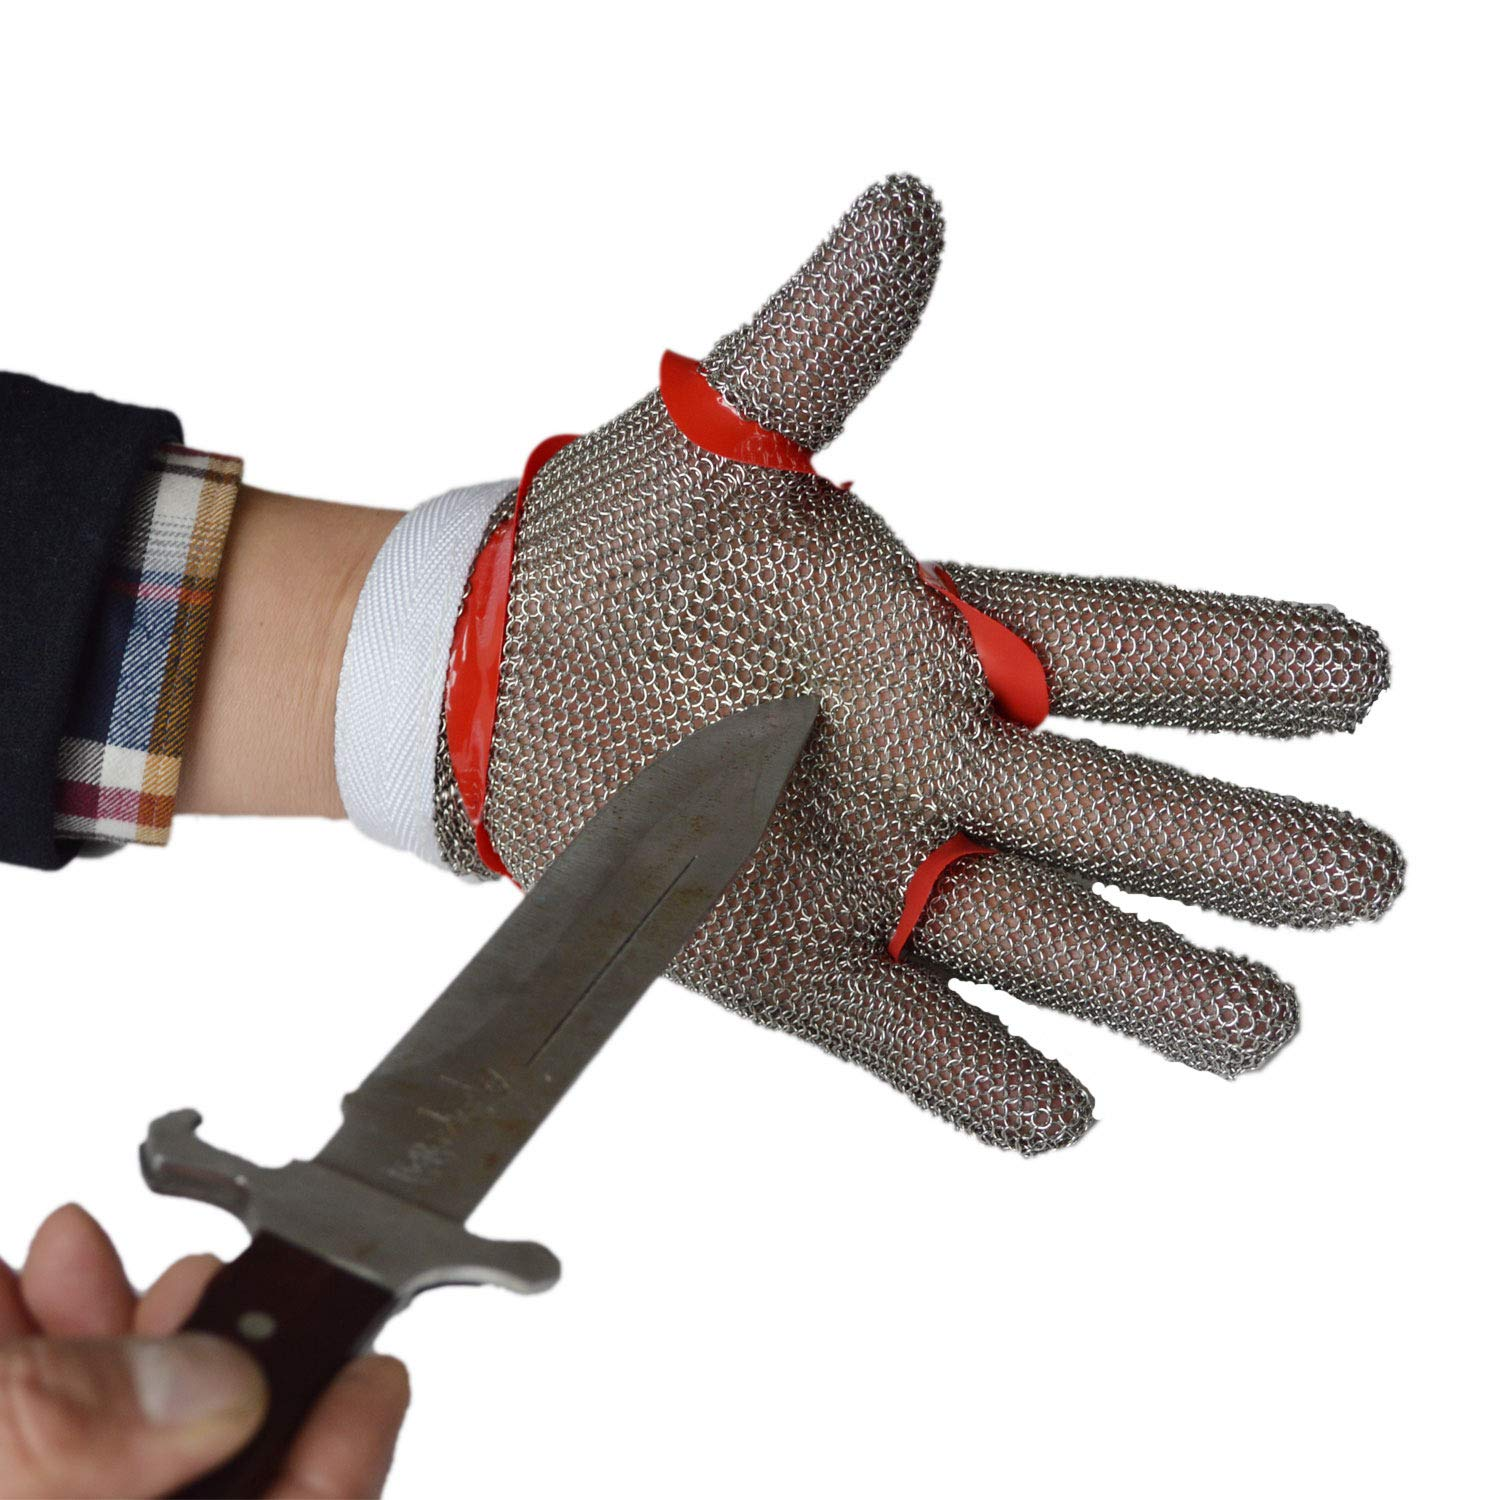 ZHANGZHIYUA Anself Cut Resistant Glove Stainless Steel Mesh Knife Cut Resistant Protective Glove